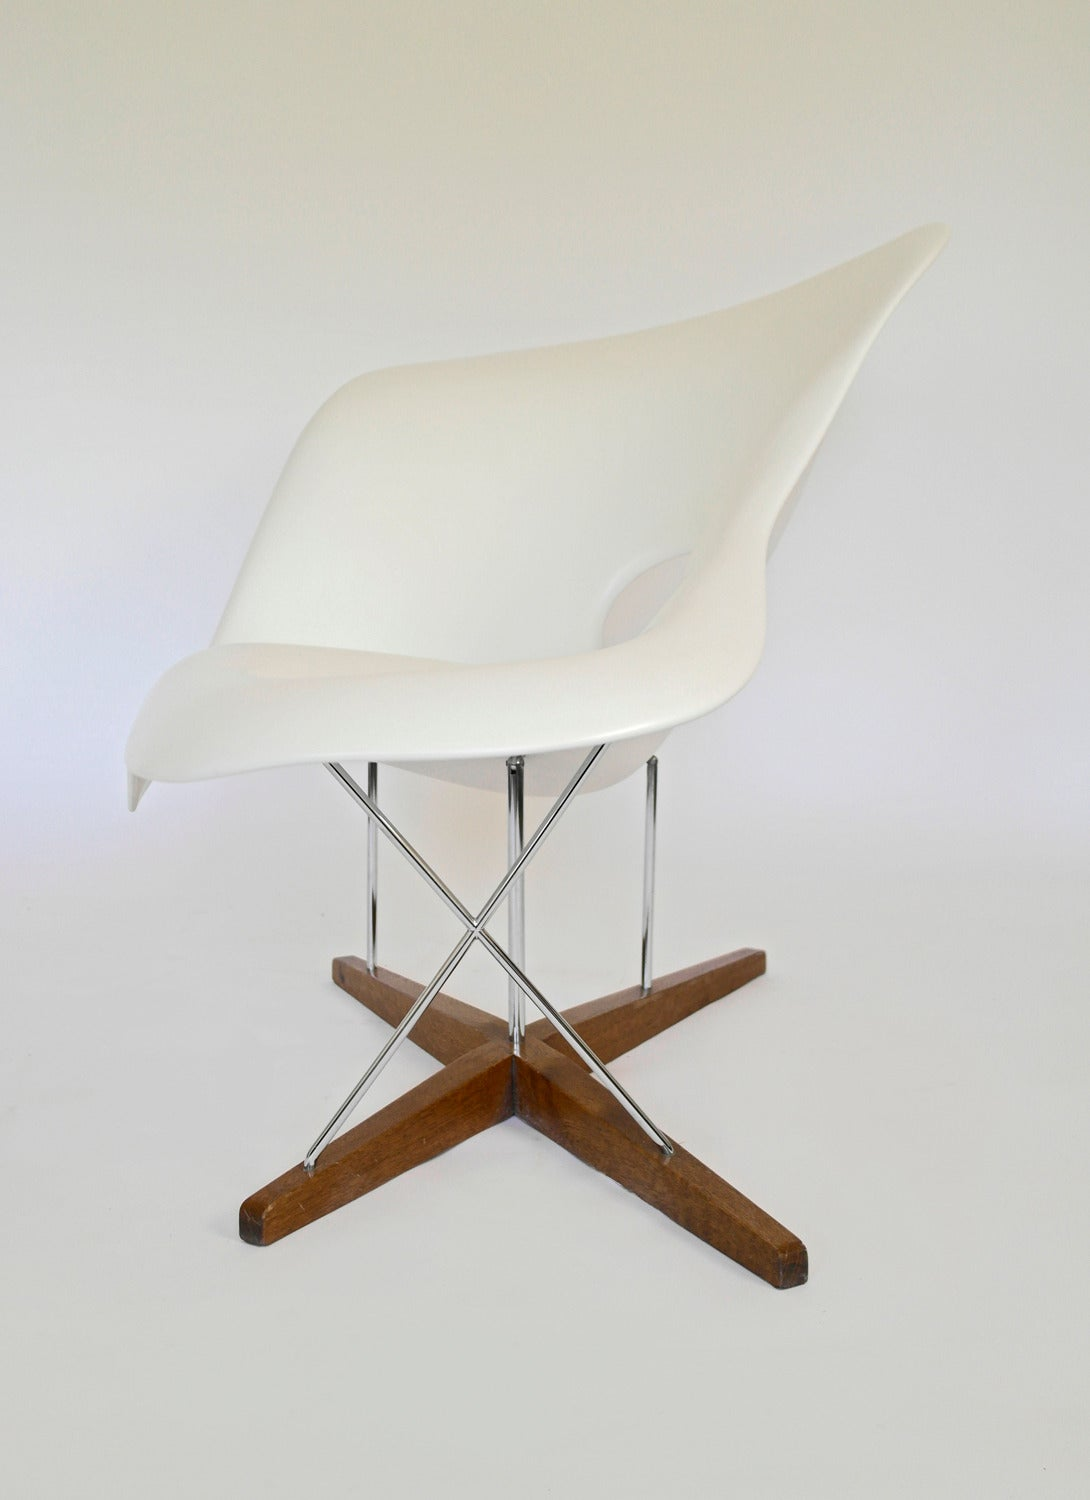 Vitra edition la chaise by charles and ray eames at 1stdibs for Charles eames chaise a bascule